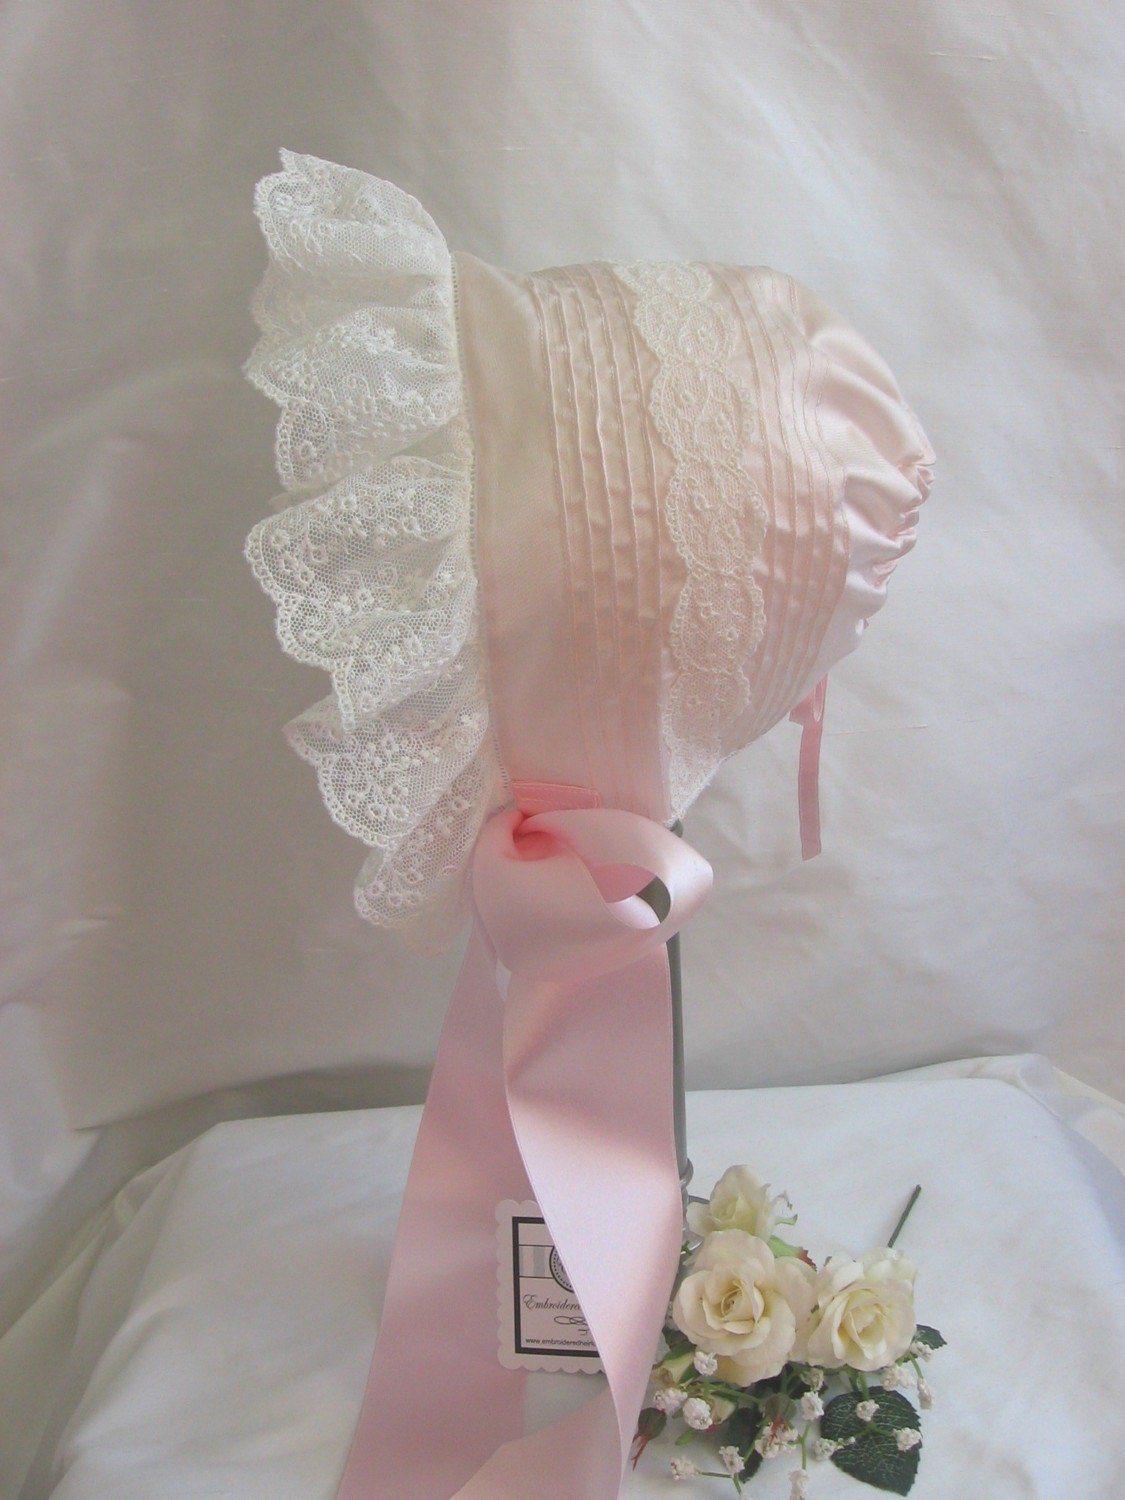 Handmade Baby Bonnet Easter Shower Welcome Gift